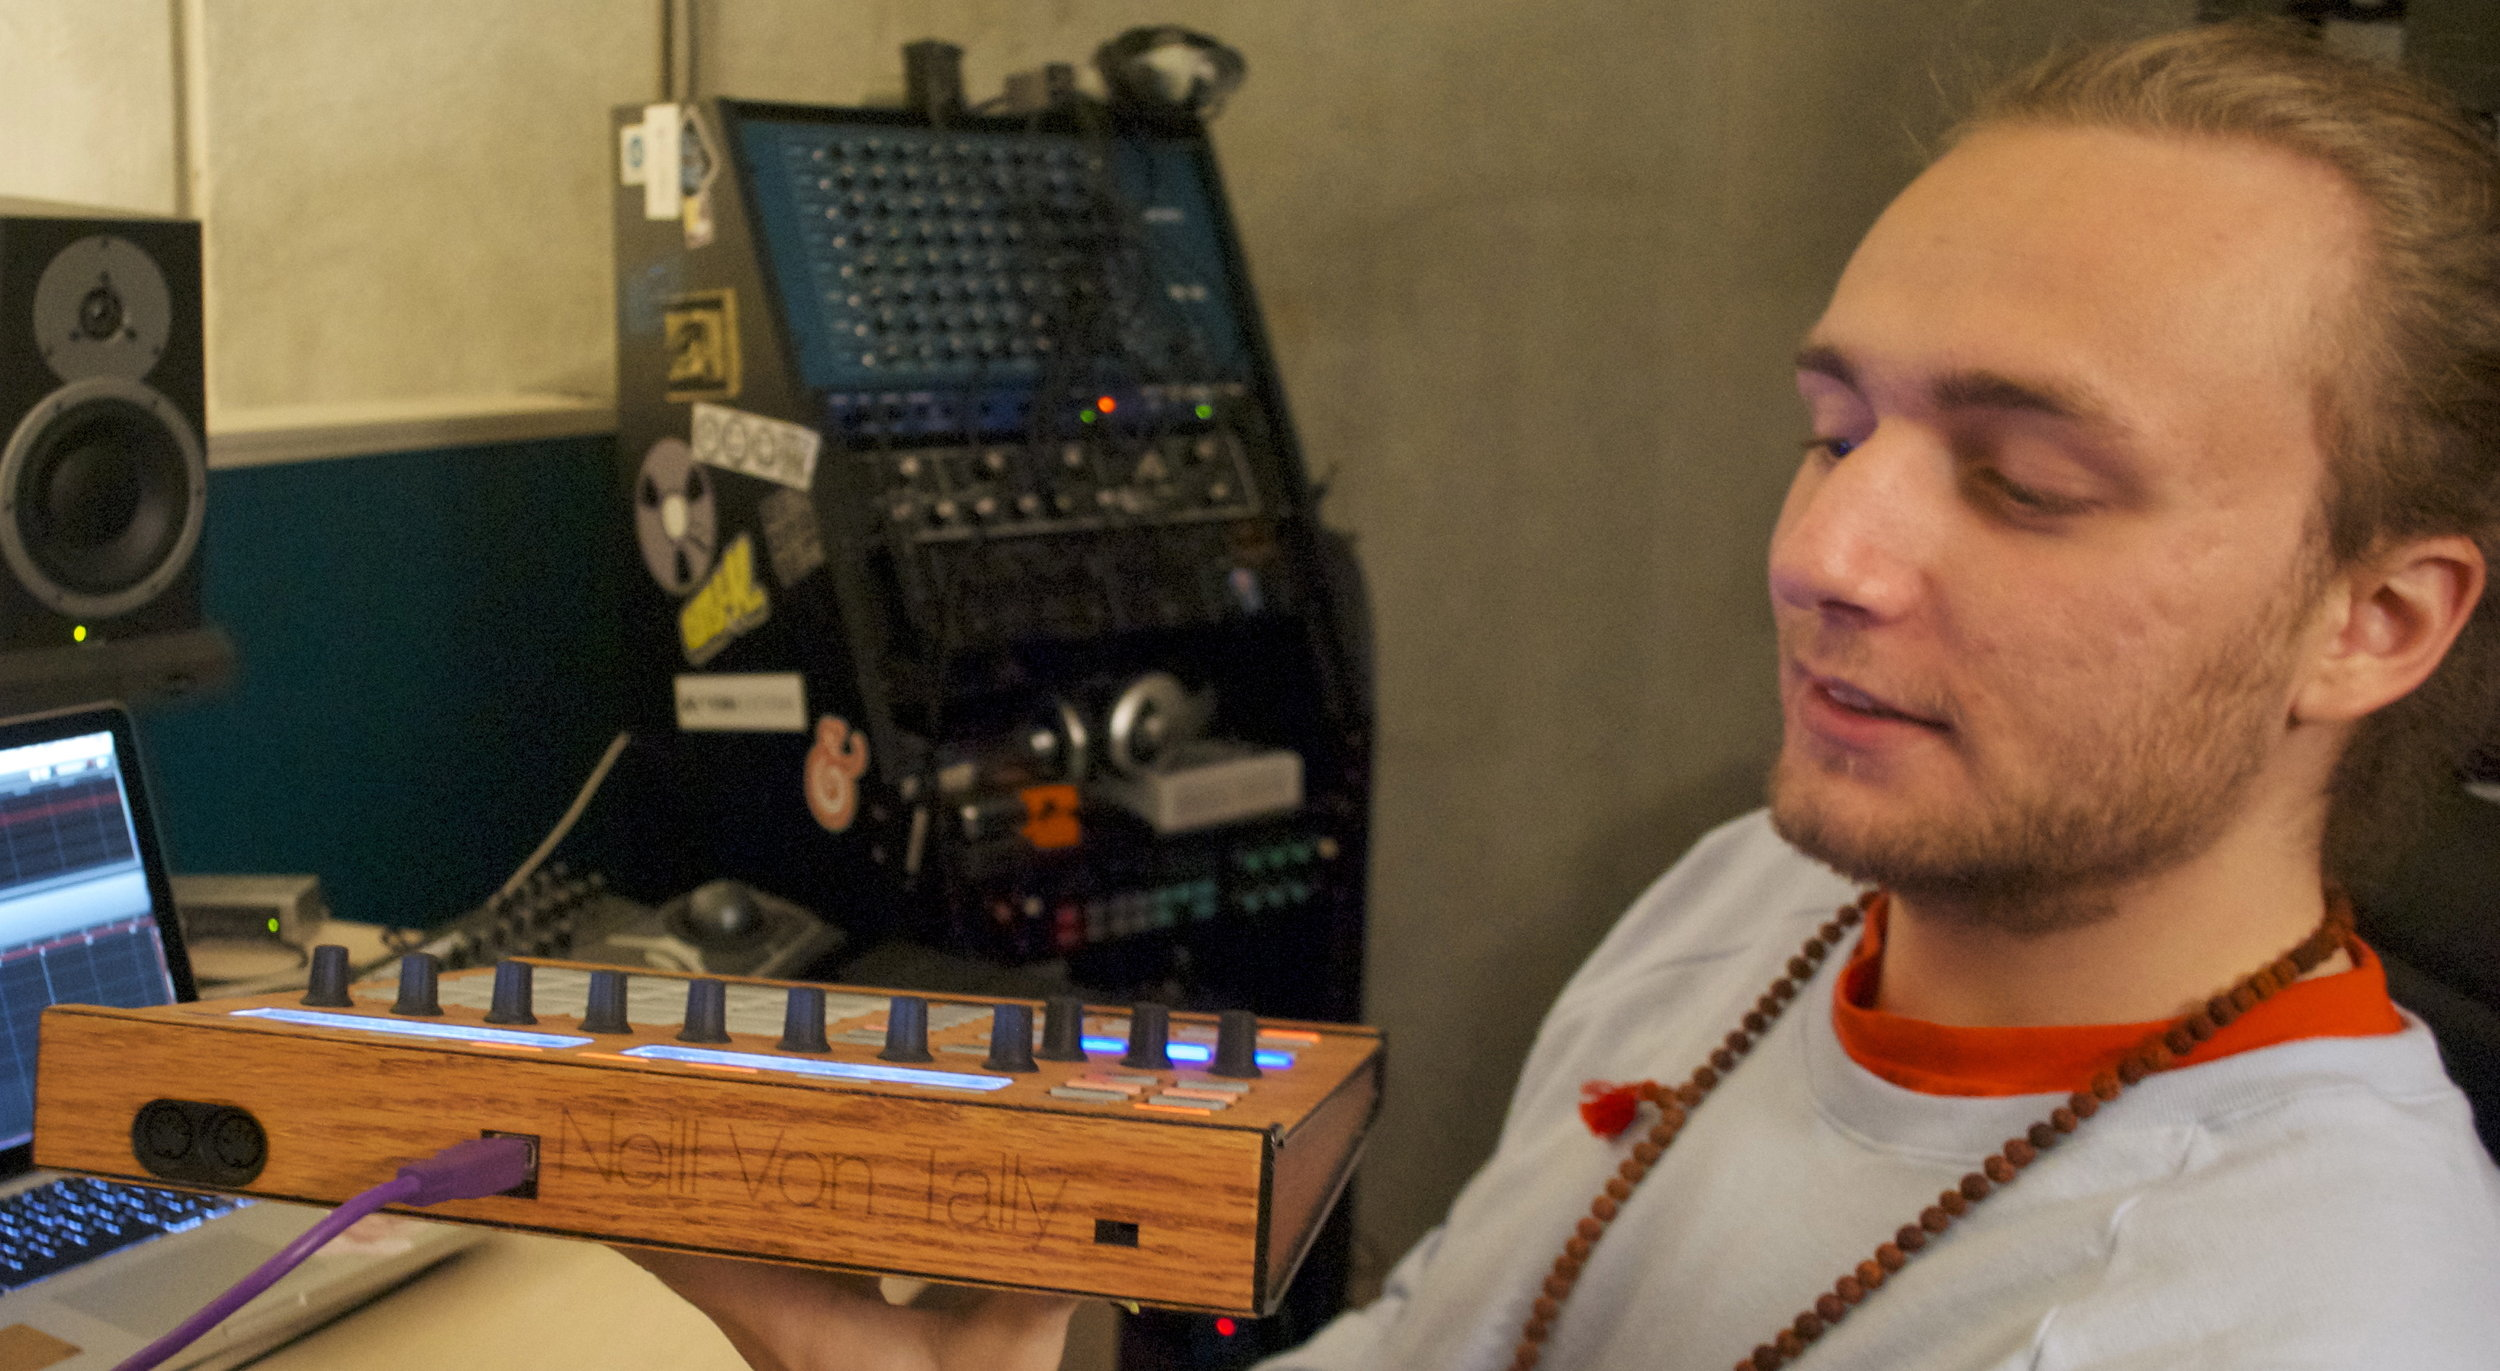 """You can pretty much do anything with a laser cutter,"" Von Tally says, holding up his custom wood framed Maschine production system."